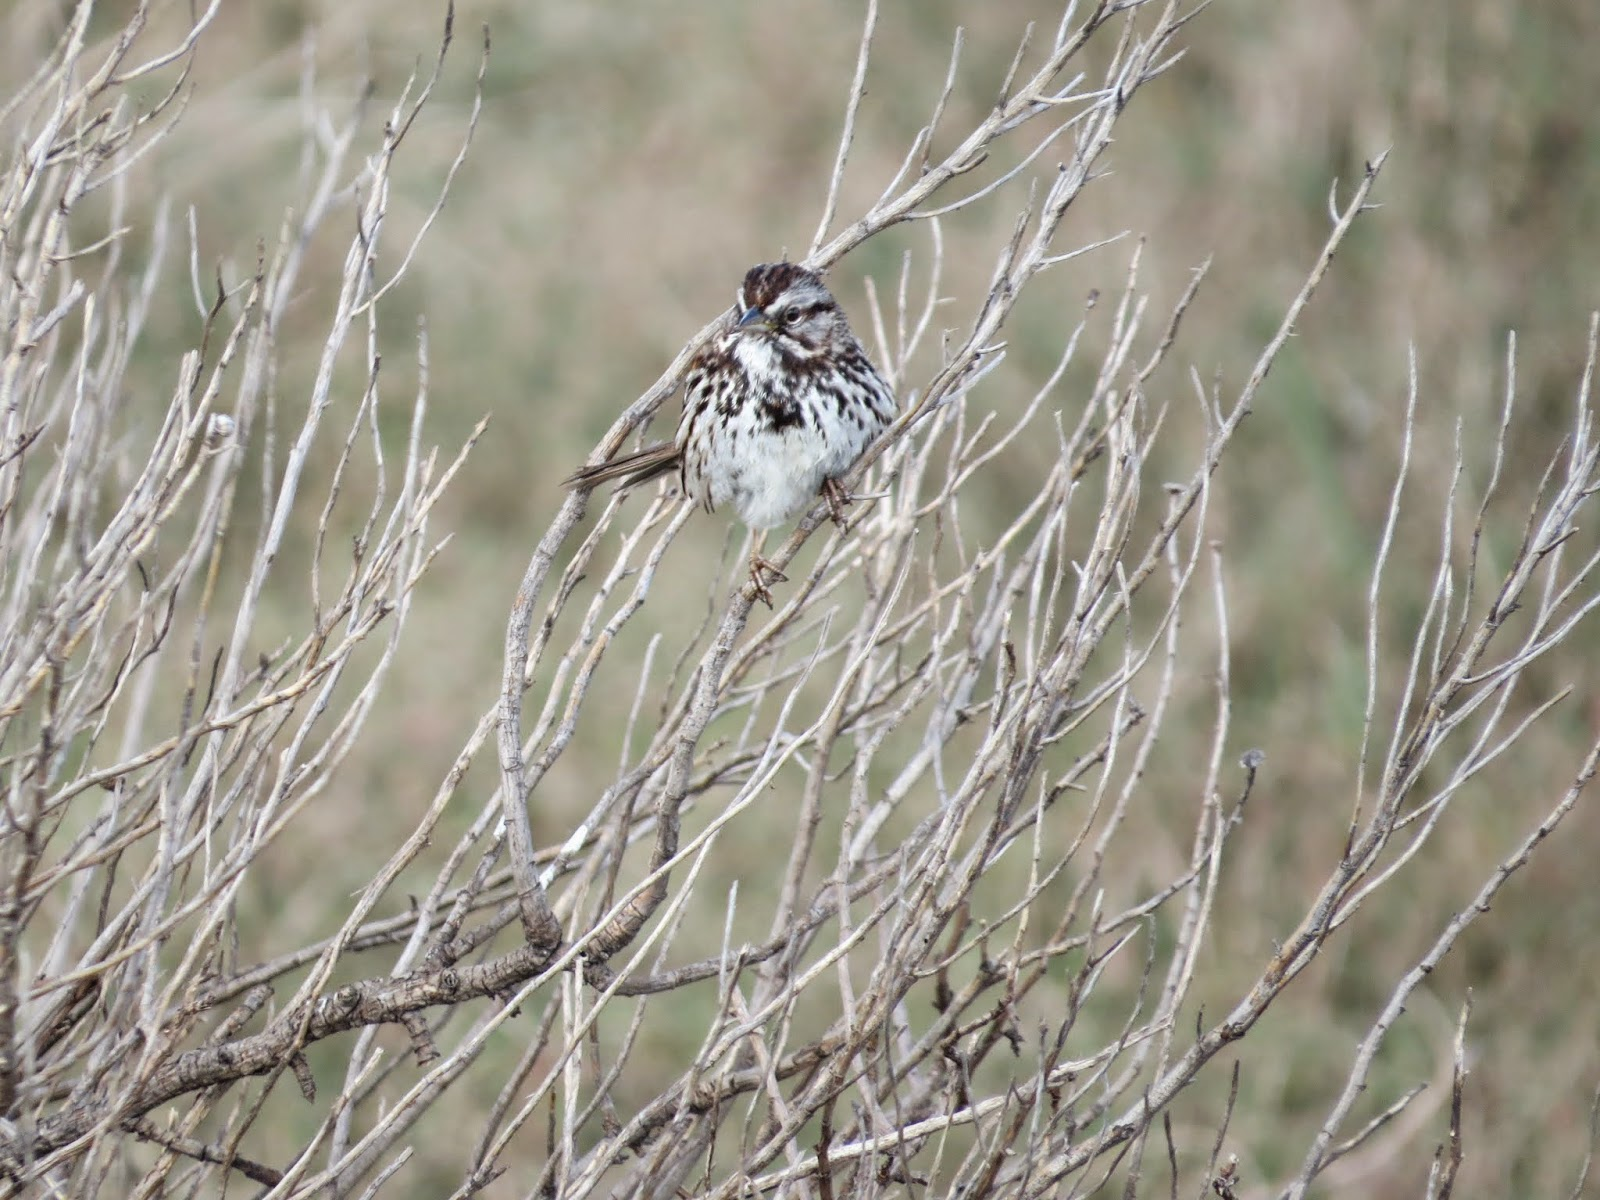 saltmarsh sparrow at Palo Alto Baylands